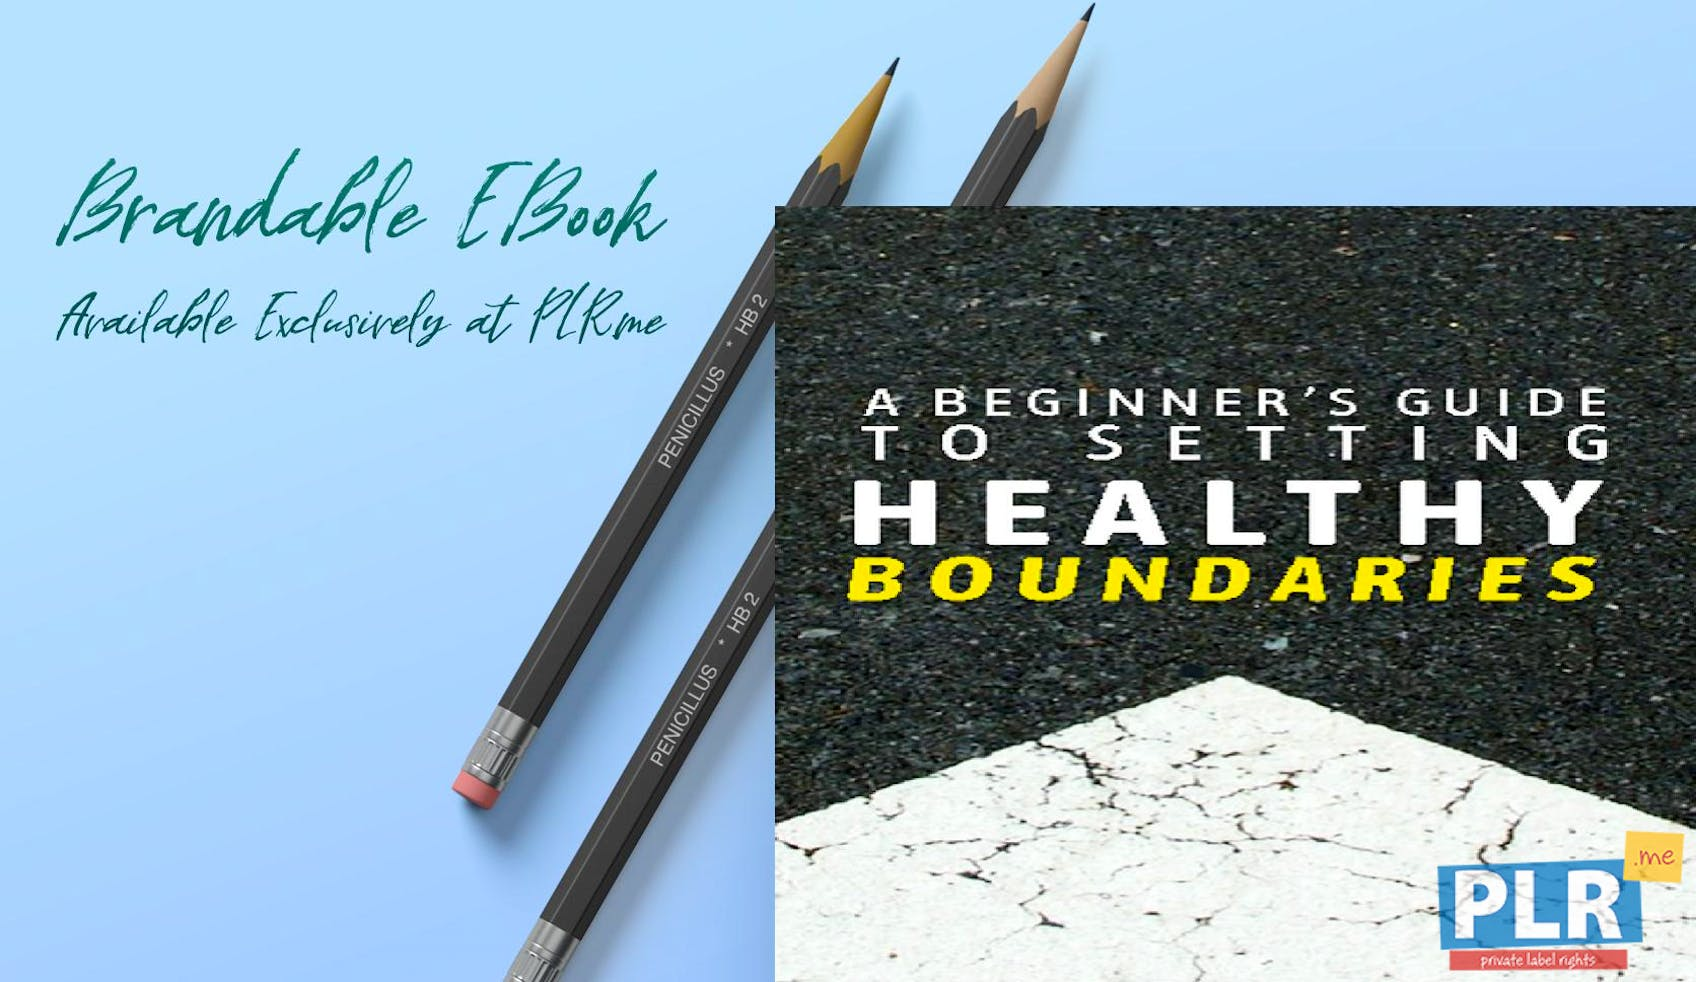 A Beginners Guide To Setting Healthy Boundaries